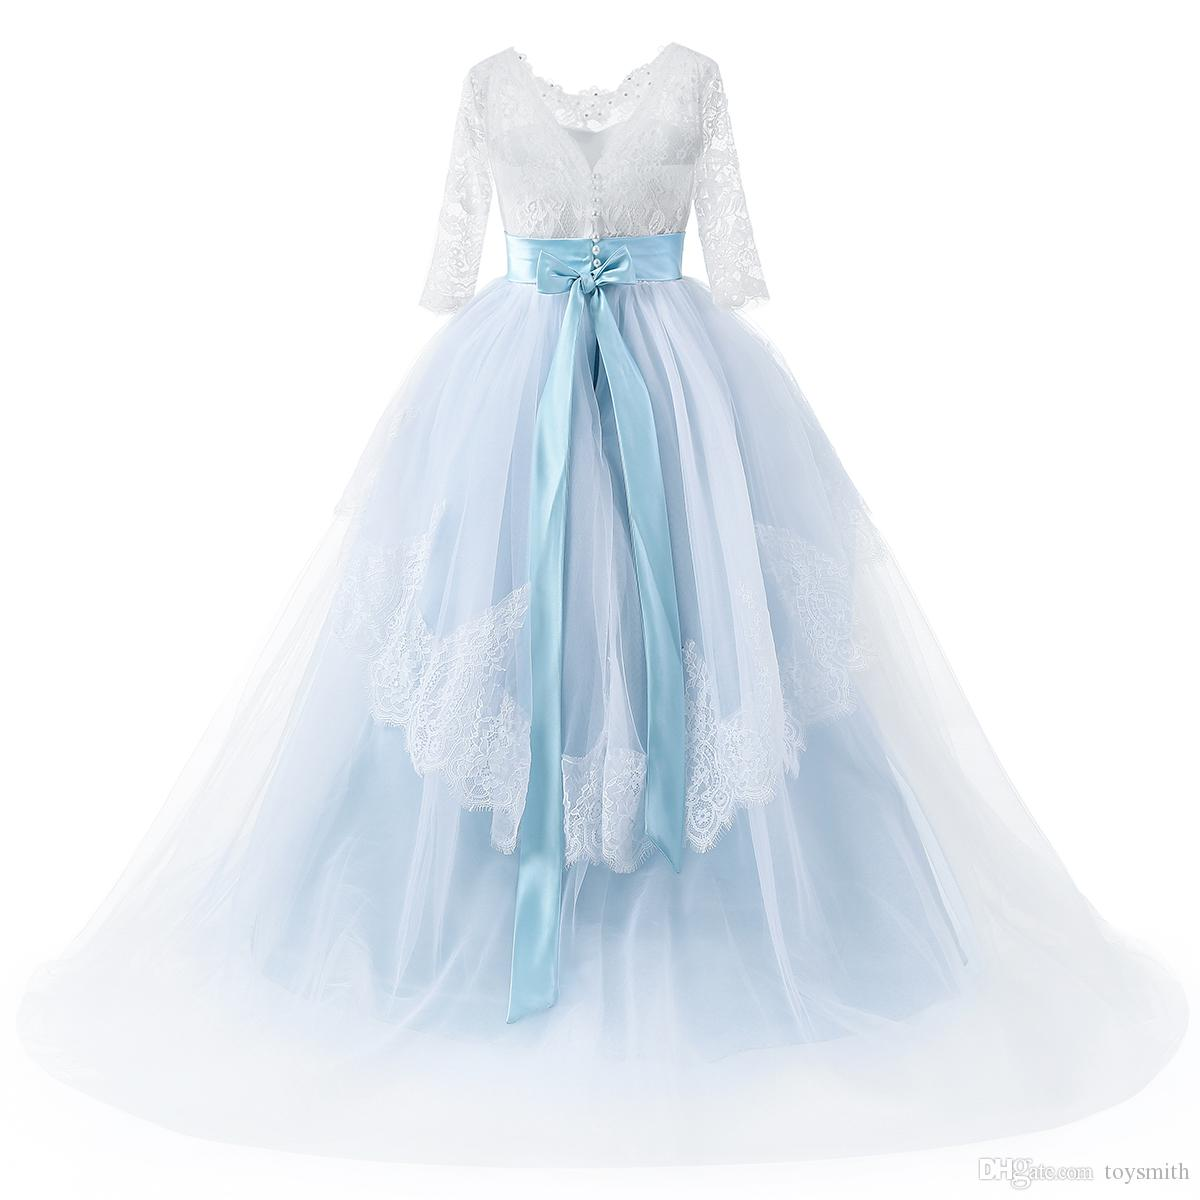 2018 New Fashion Tulle Jewel Lace Applique Half Sleeve Beaded Bow Flower Girl Dresses Sash Children's Pageant Dress